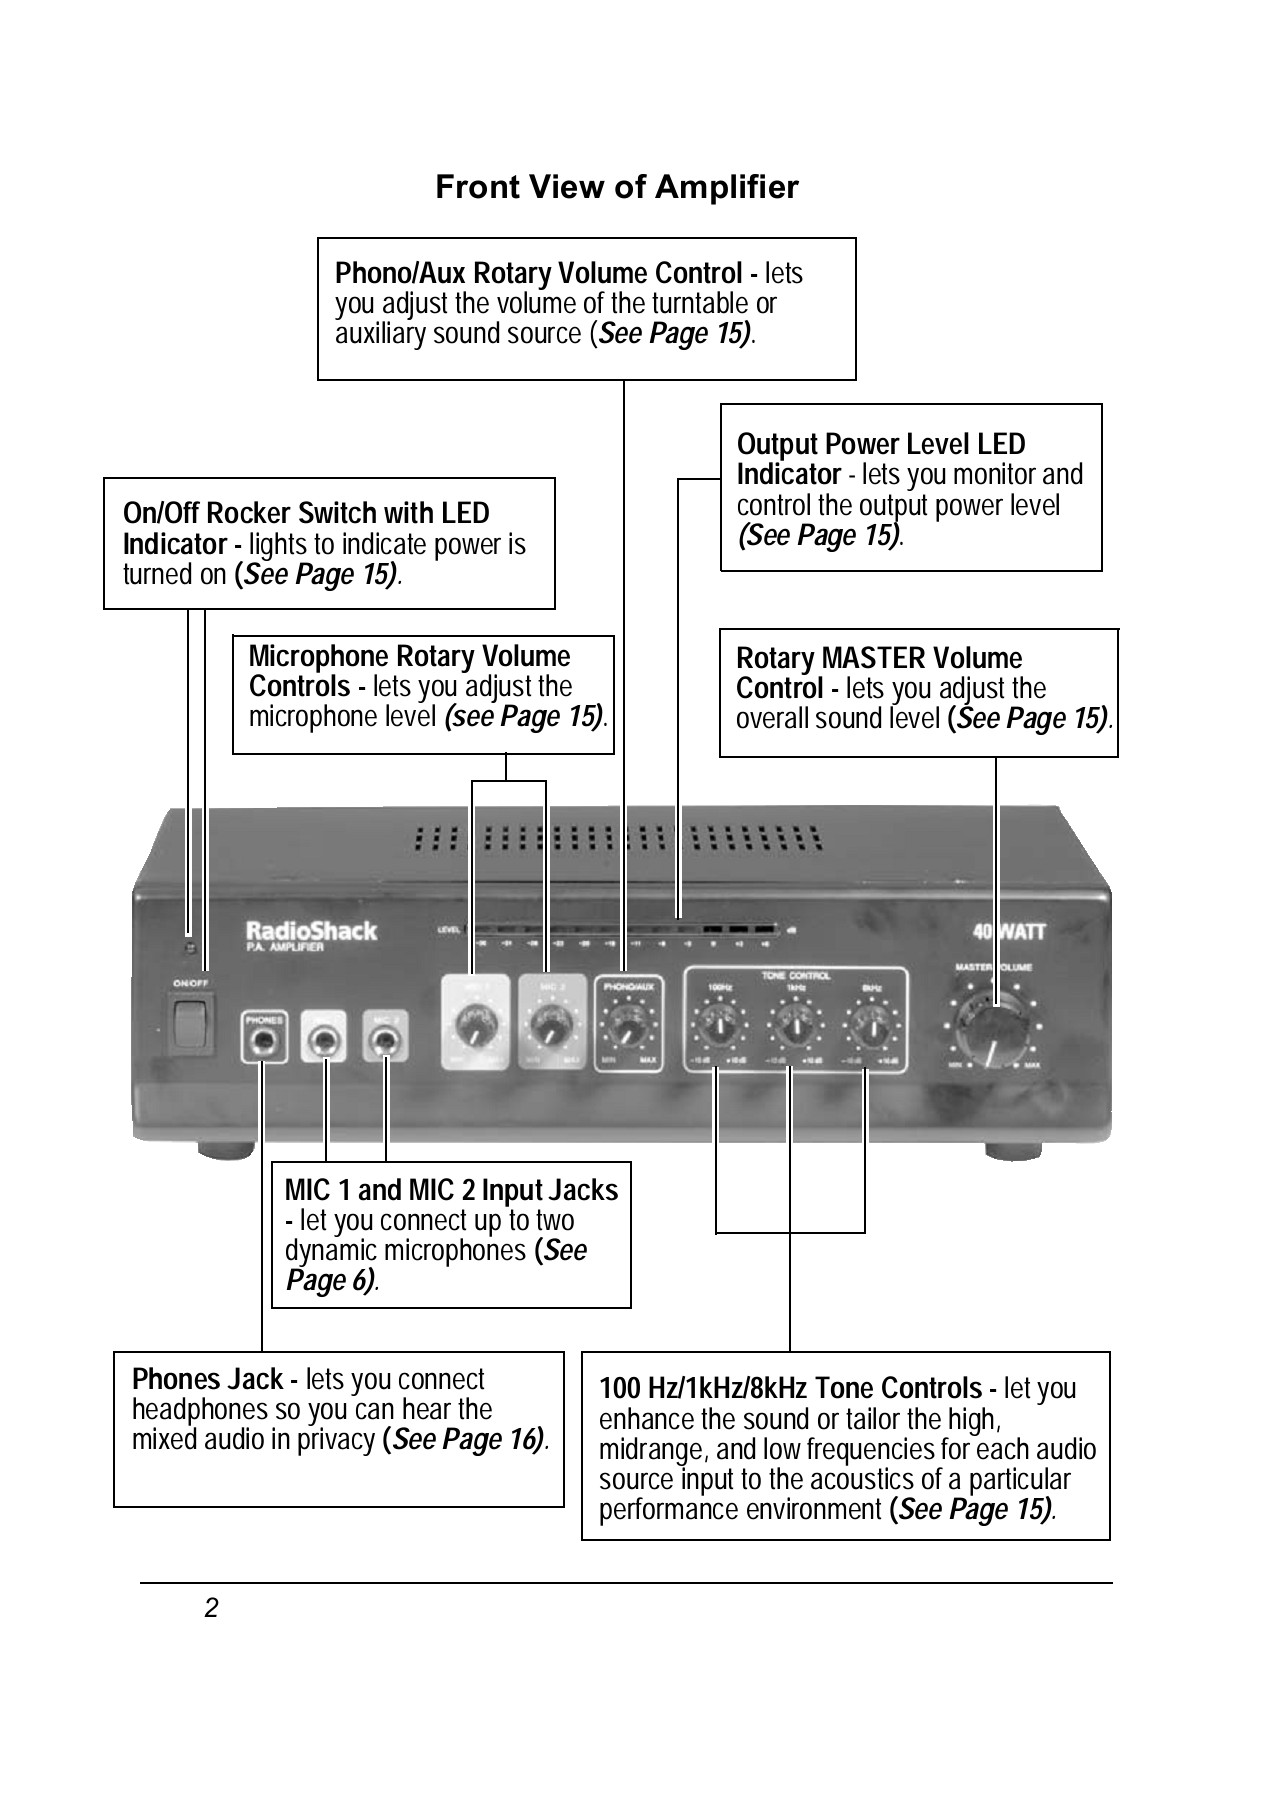 hight resolution of radio shack pa manual 3202054 pm en pages 1 20 text version anyflip